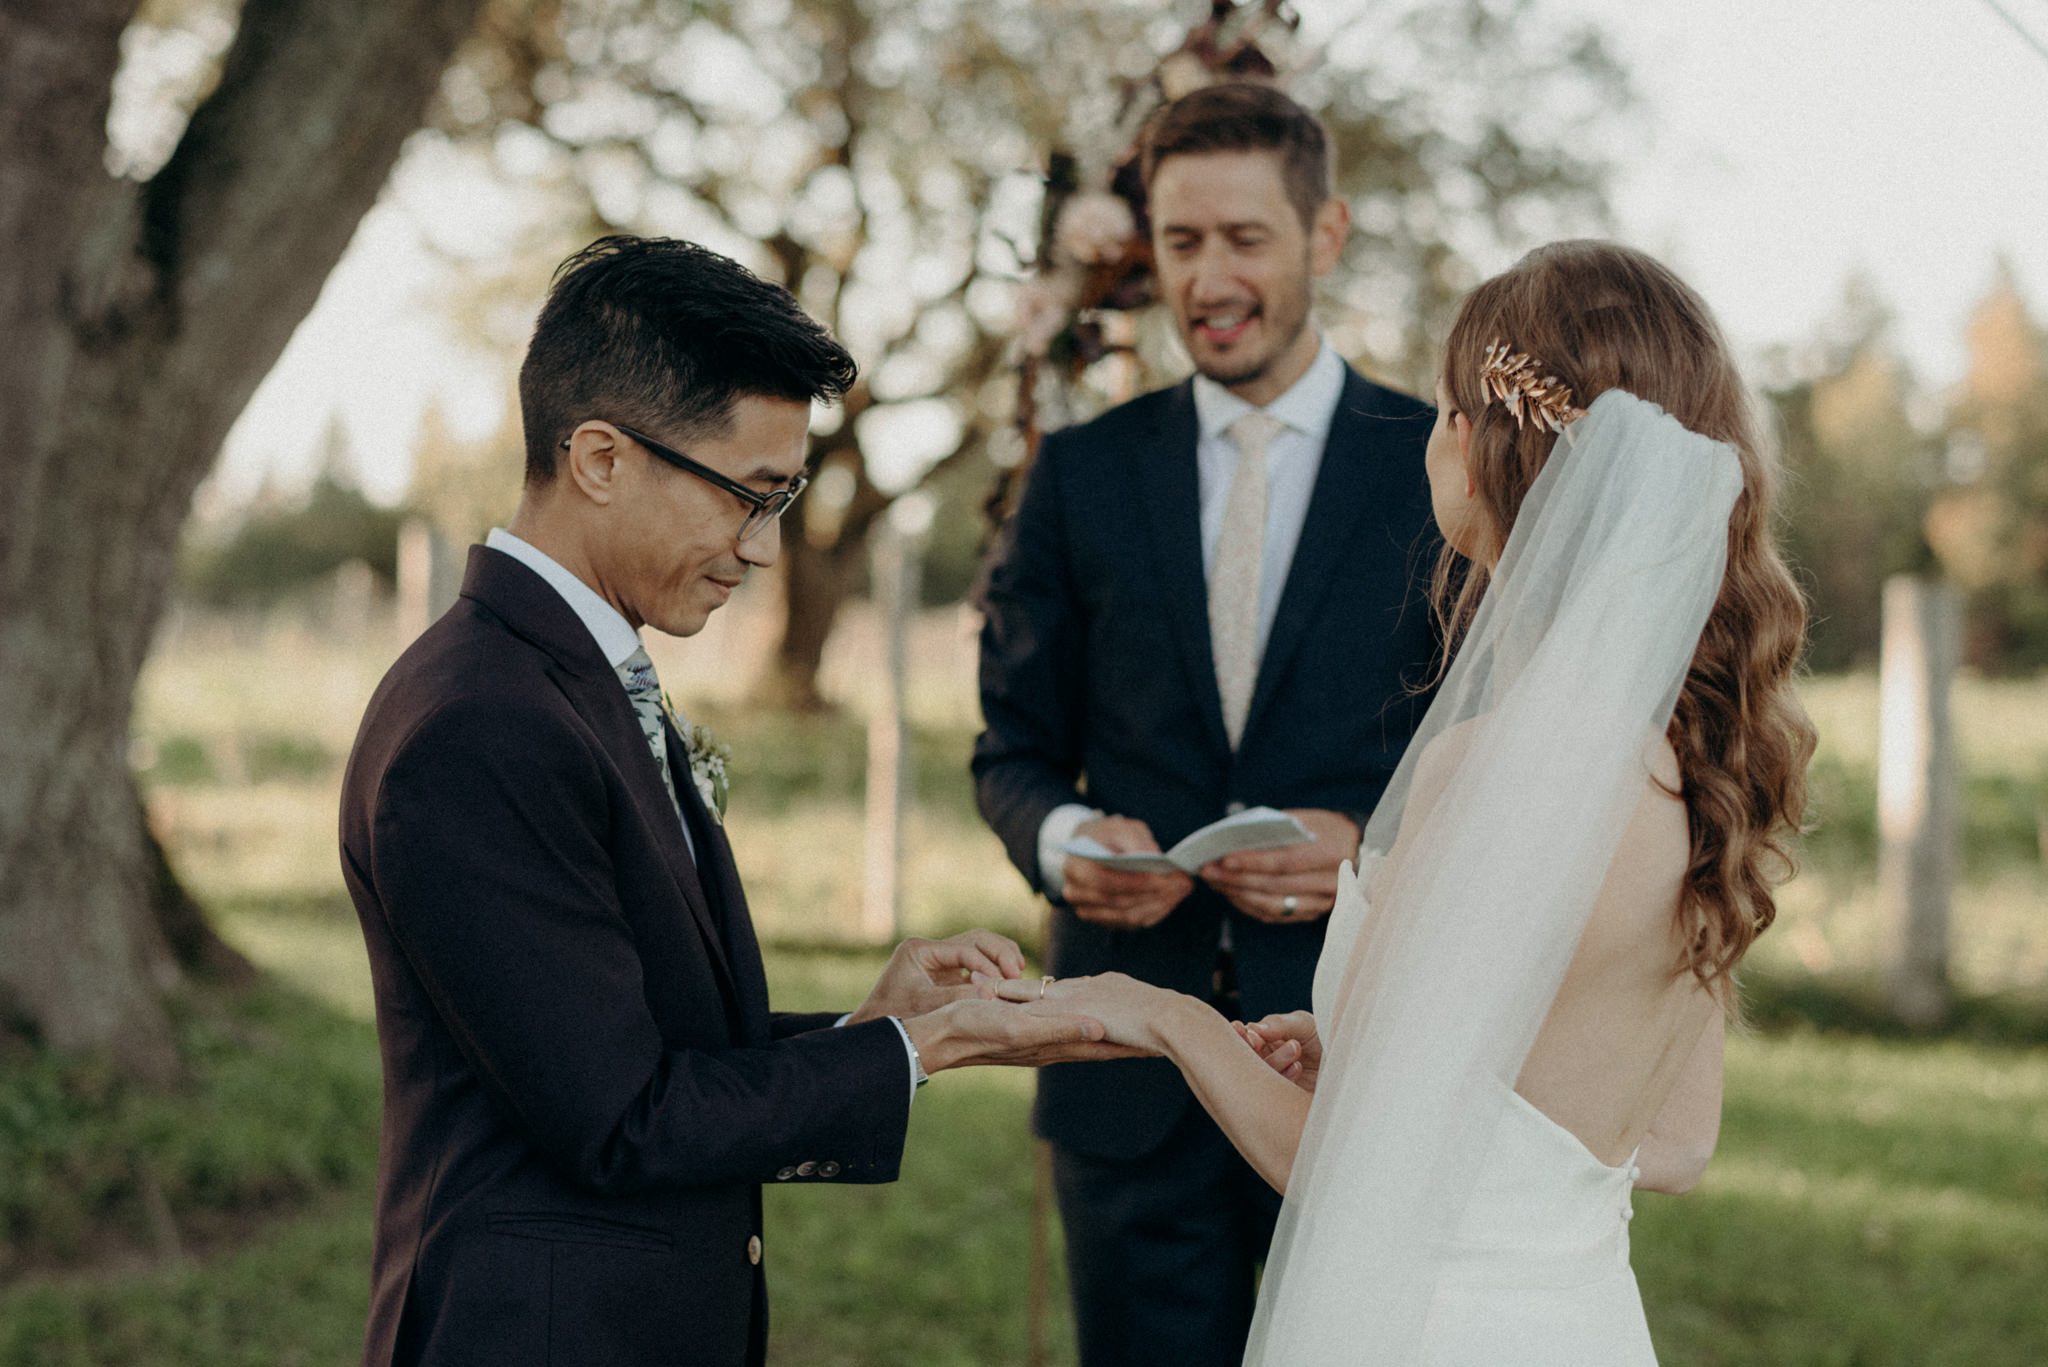 couple exchanging rings during outdoor wedding ceremony